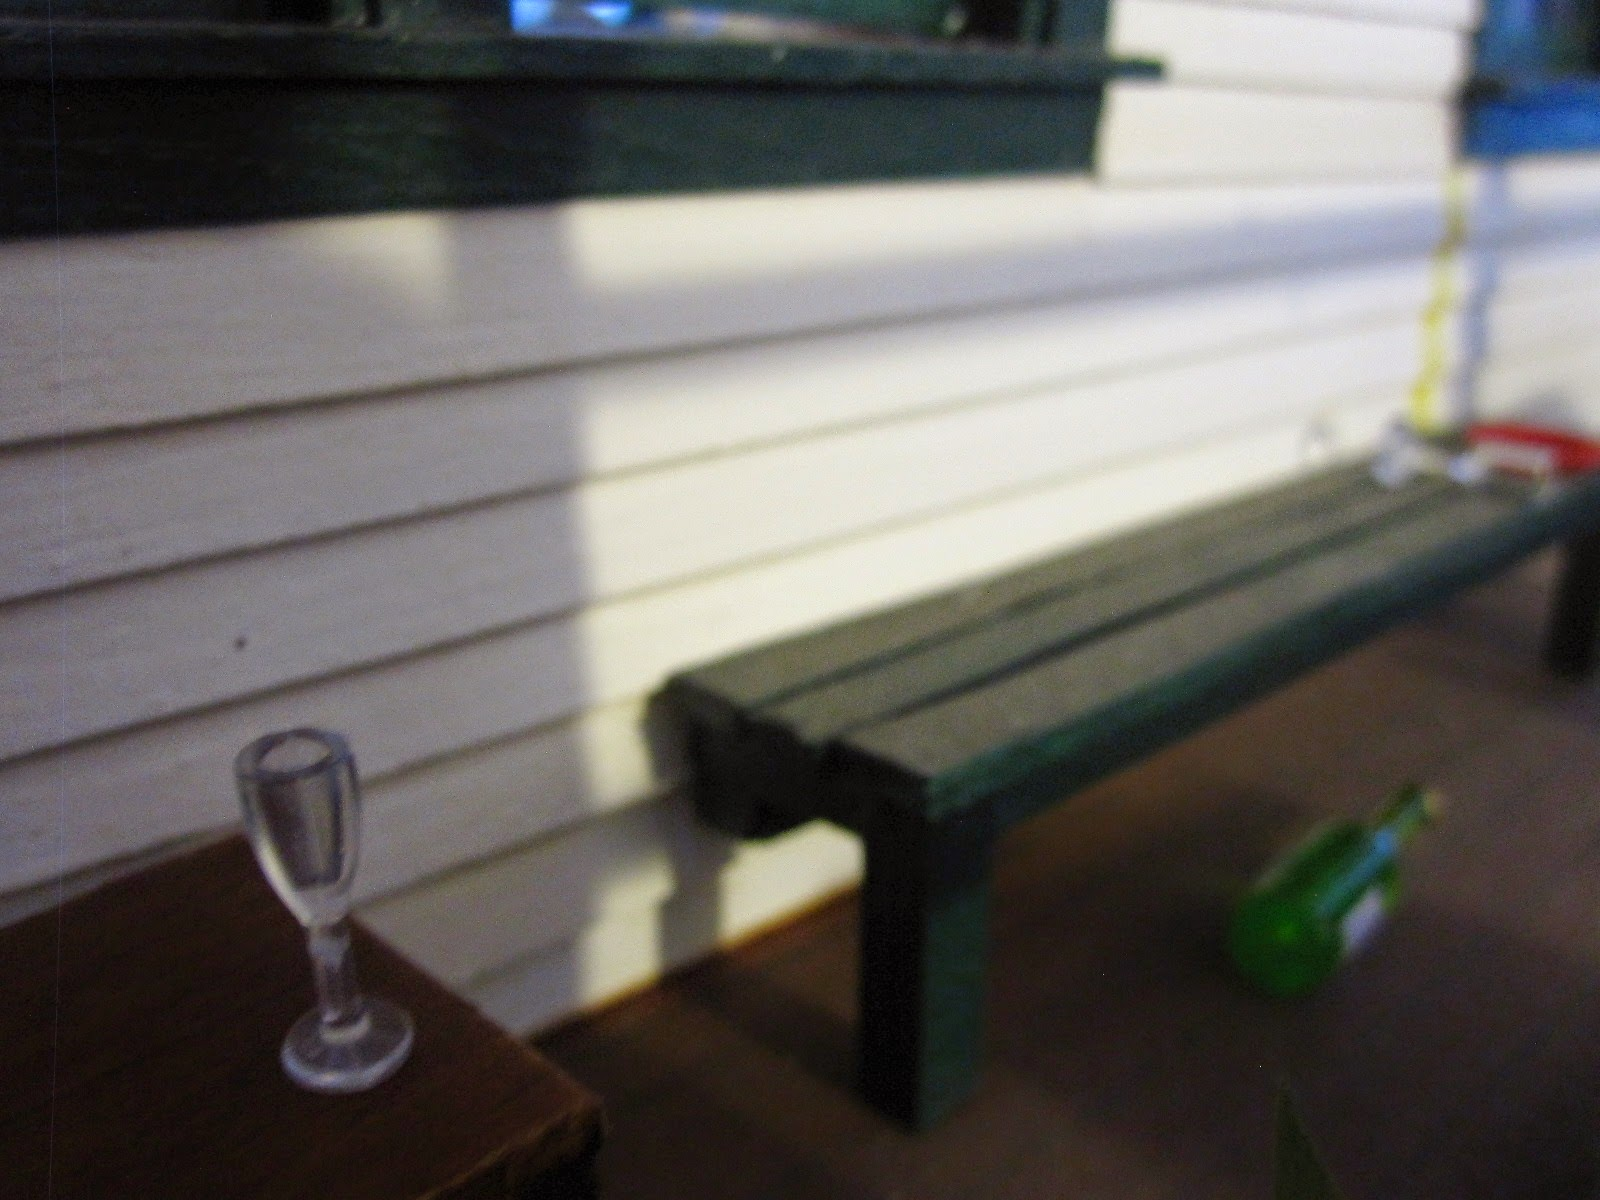 Modern dolls' house miniature verandah with a wine bottle, plate and wine glasses strewn around.